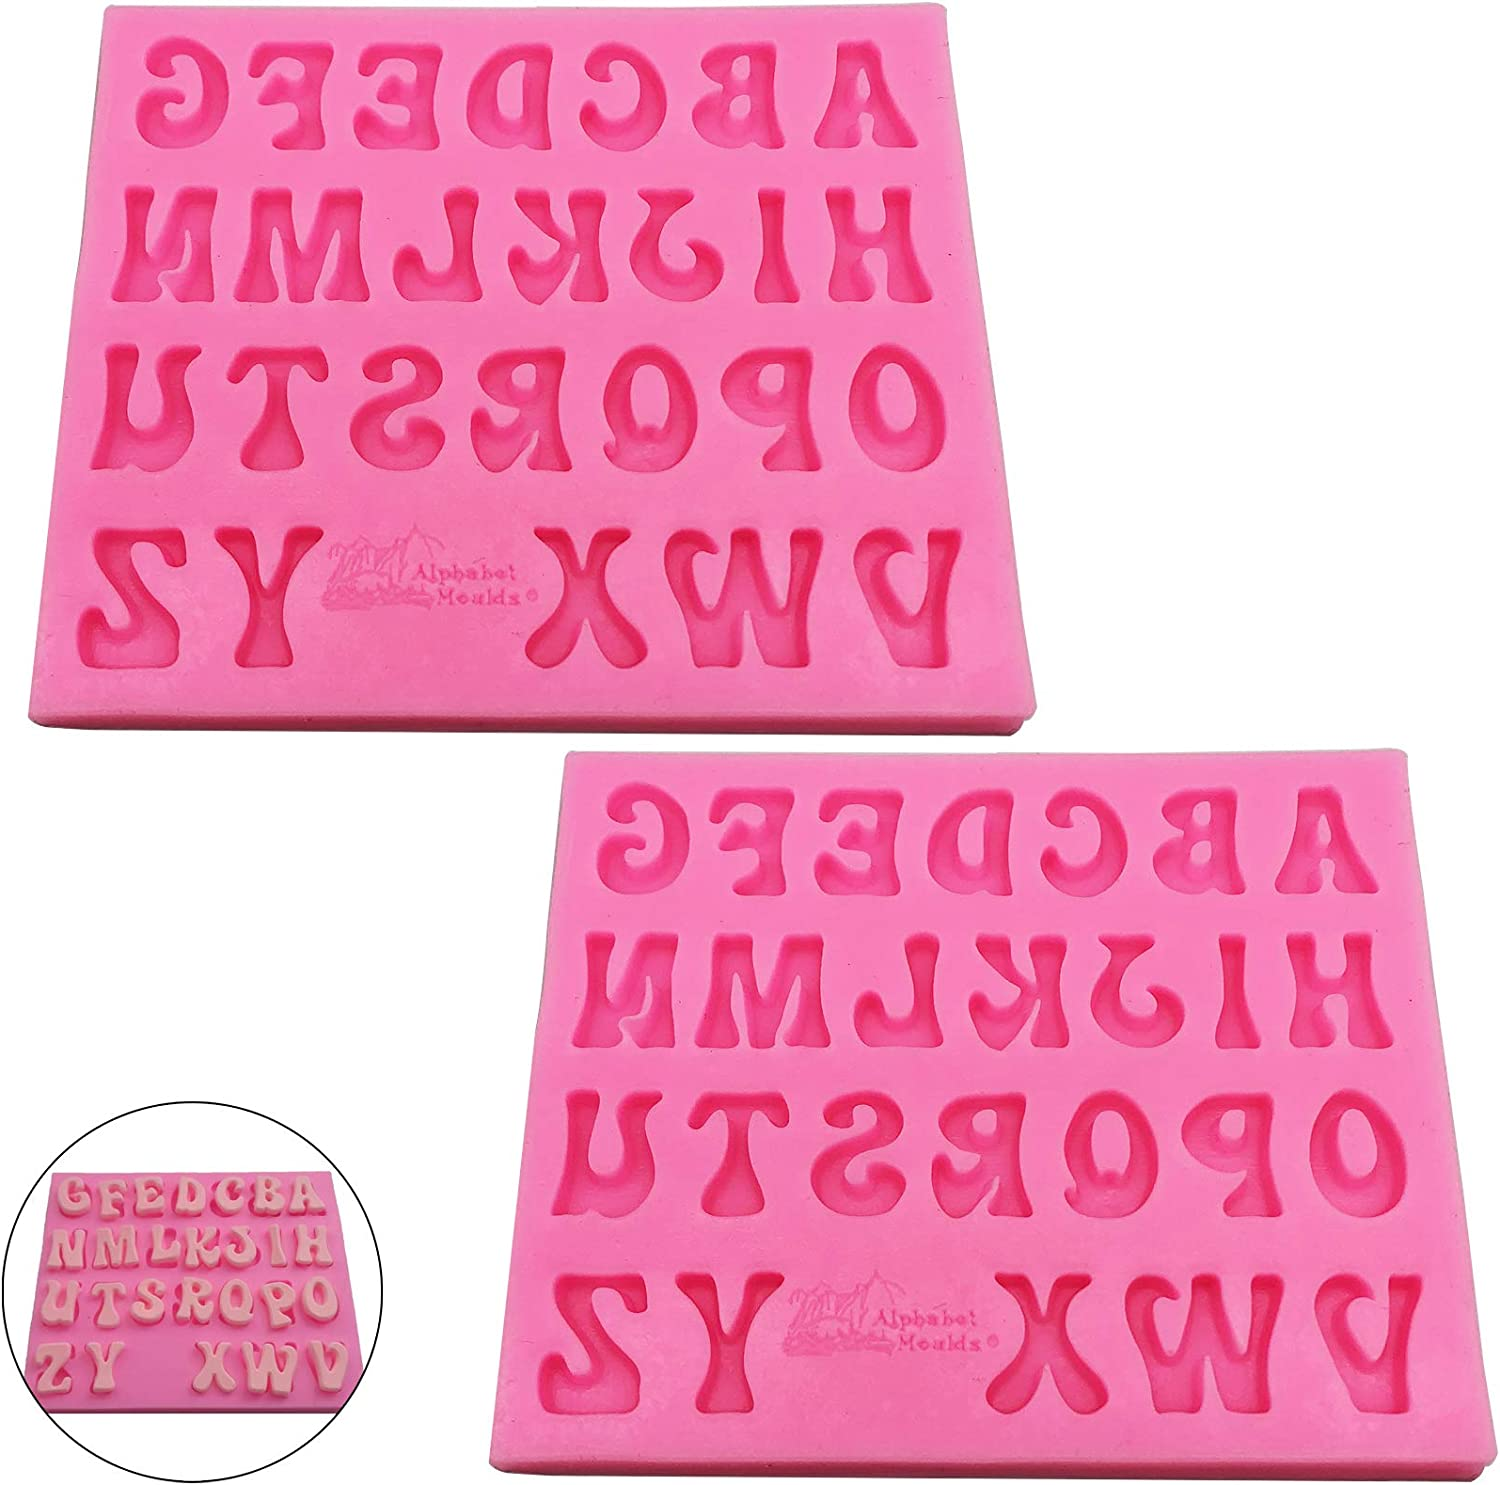 Kukiwhy 2 Pcs Alphabet Silicone Mold, Pink 26 Letters Silicone Mold DIY Mold Food-grade Silicone Making Tool for DIY Handmade Decoration